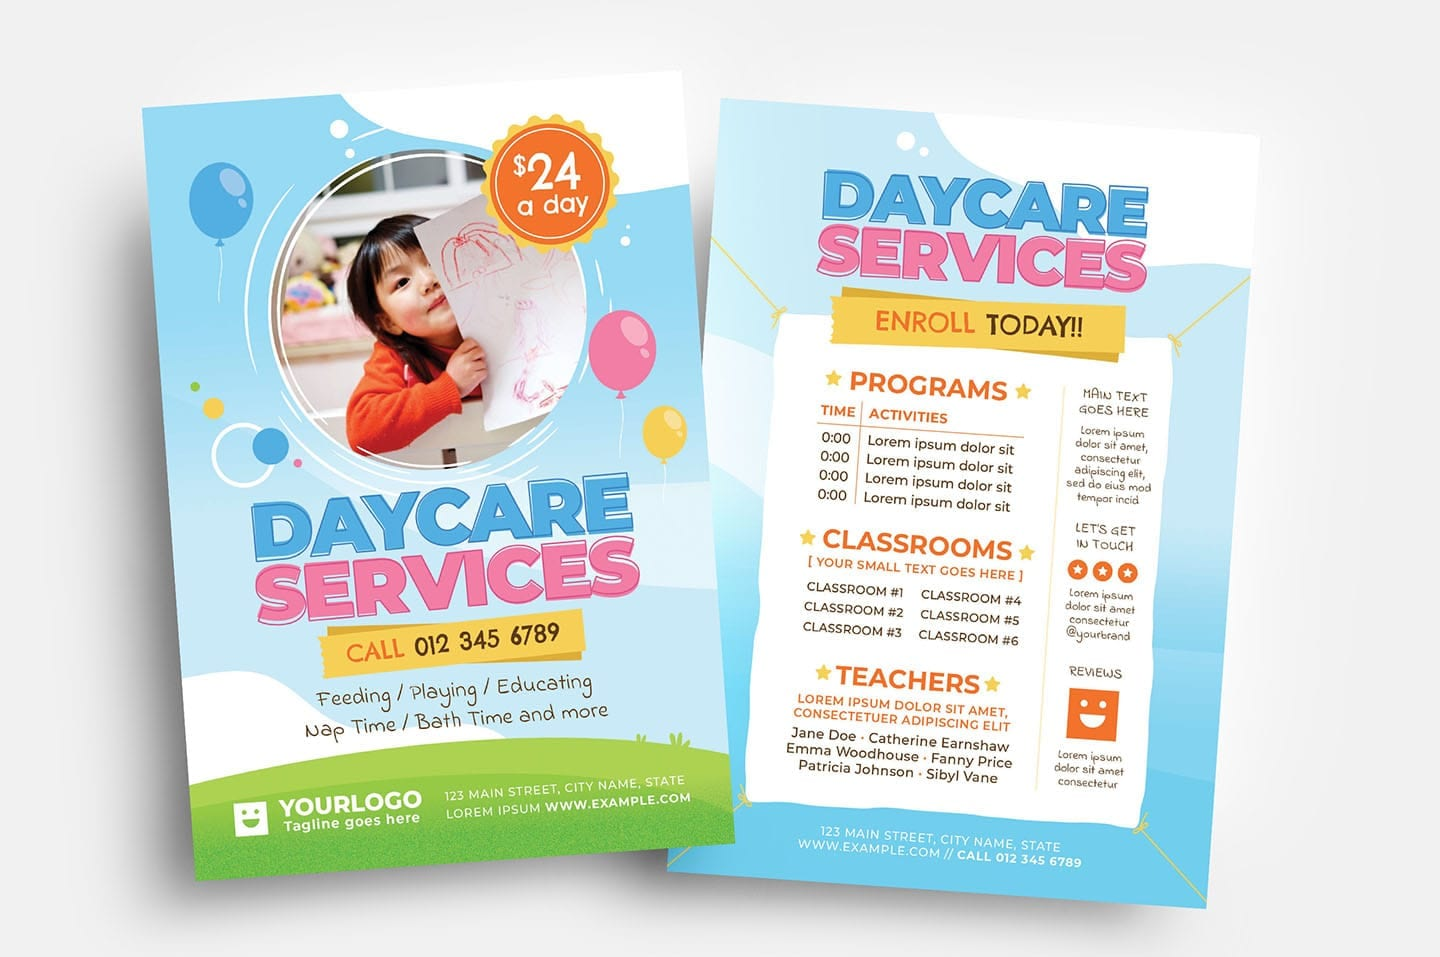 Daycare Flyer Templates - PSD, Ai & Vector - BrandPacks